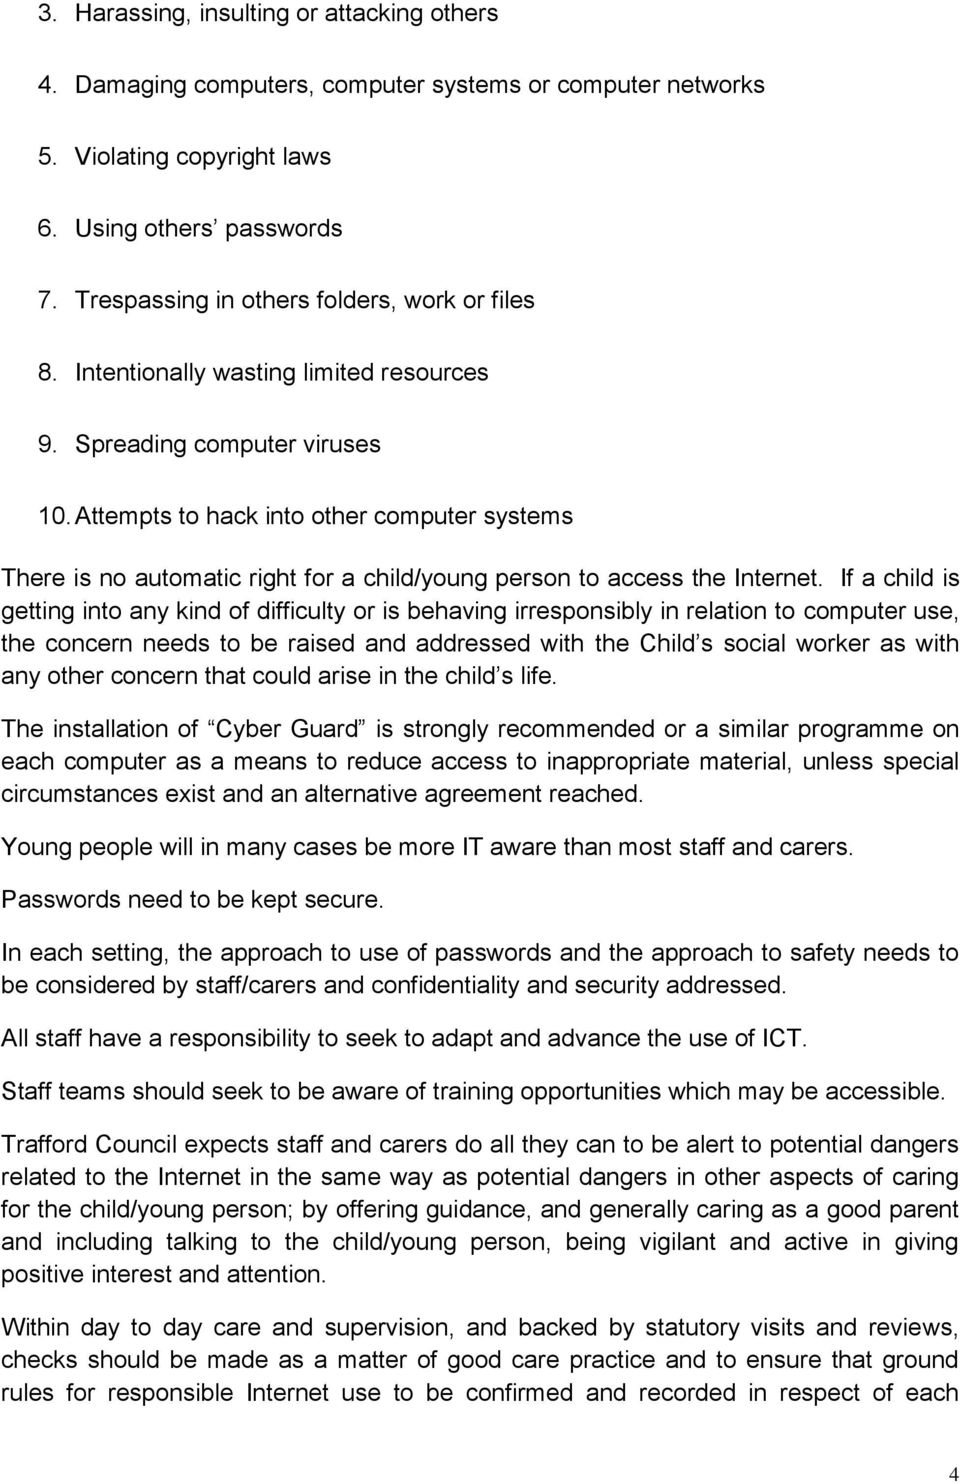 Services for Children, Young People and Families - PDF